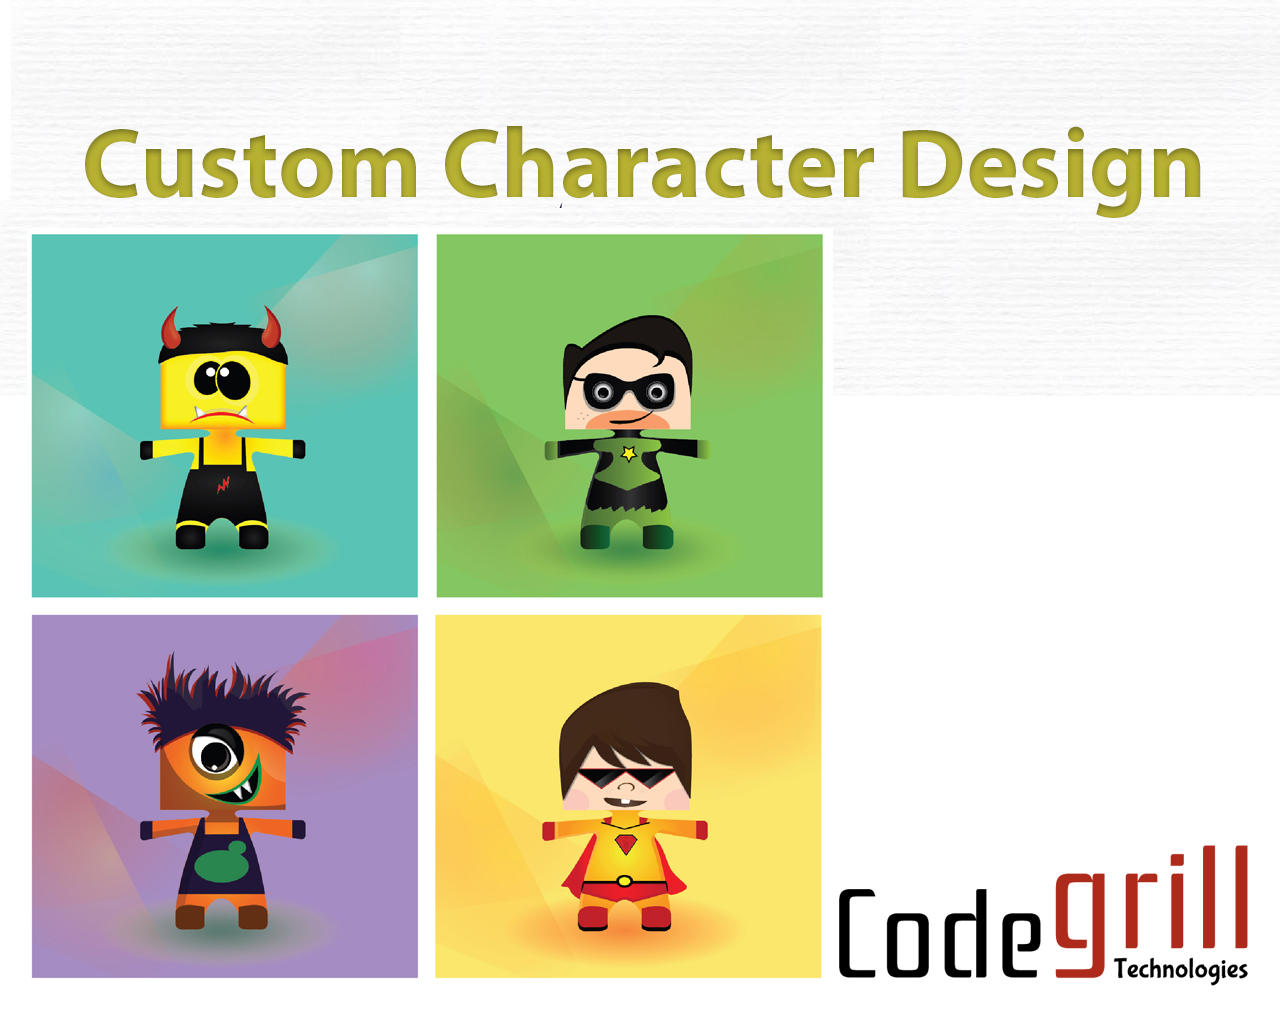 Character Design Shuffle App : Character design for games apps website by codegrill